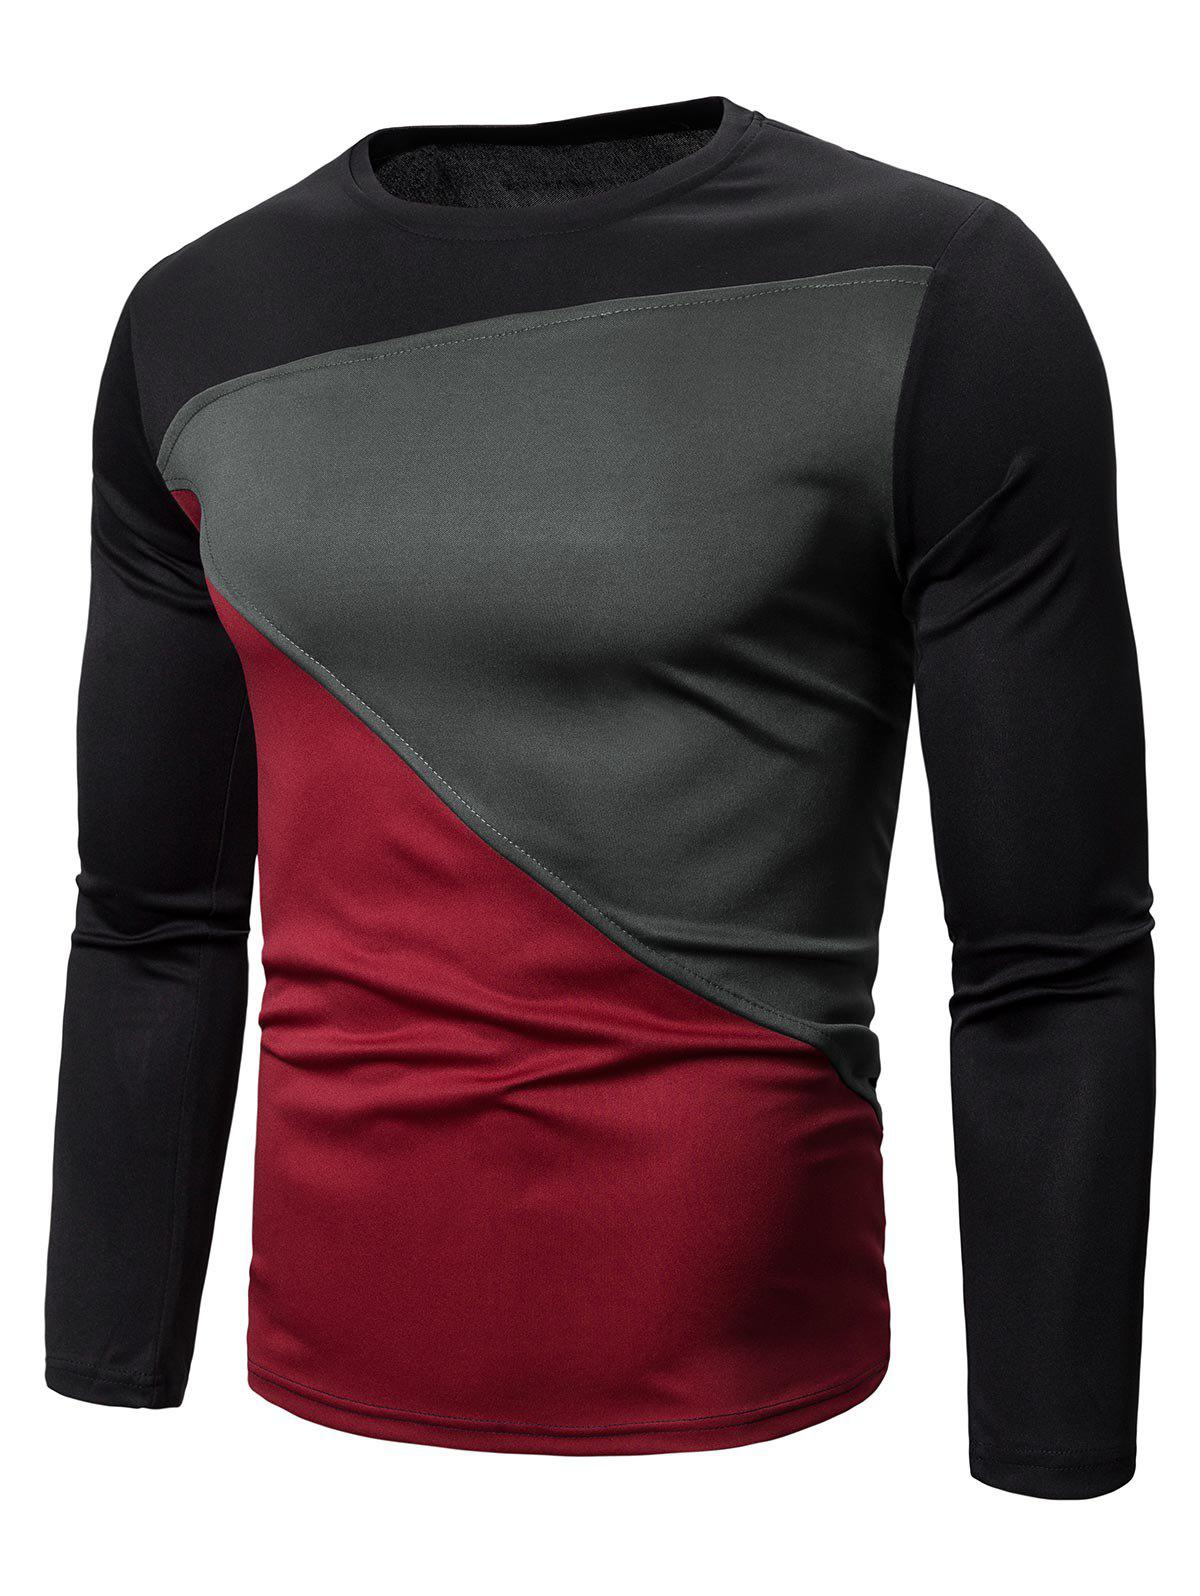 Fancy Color-blocking Long Sleeves Casual T-shirt